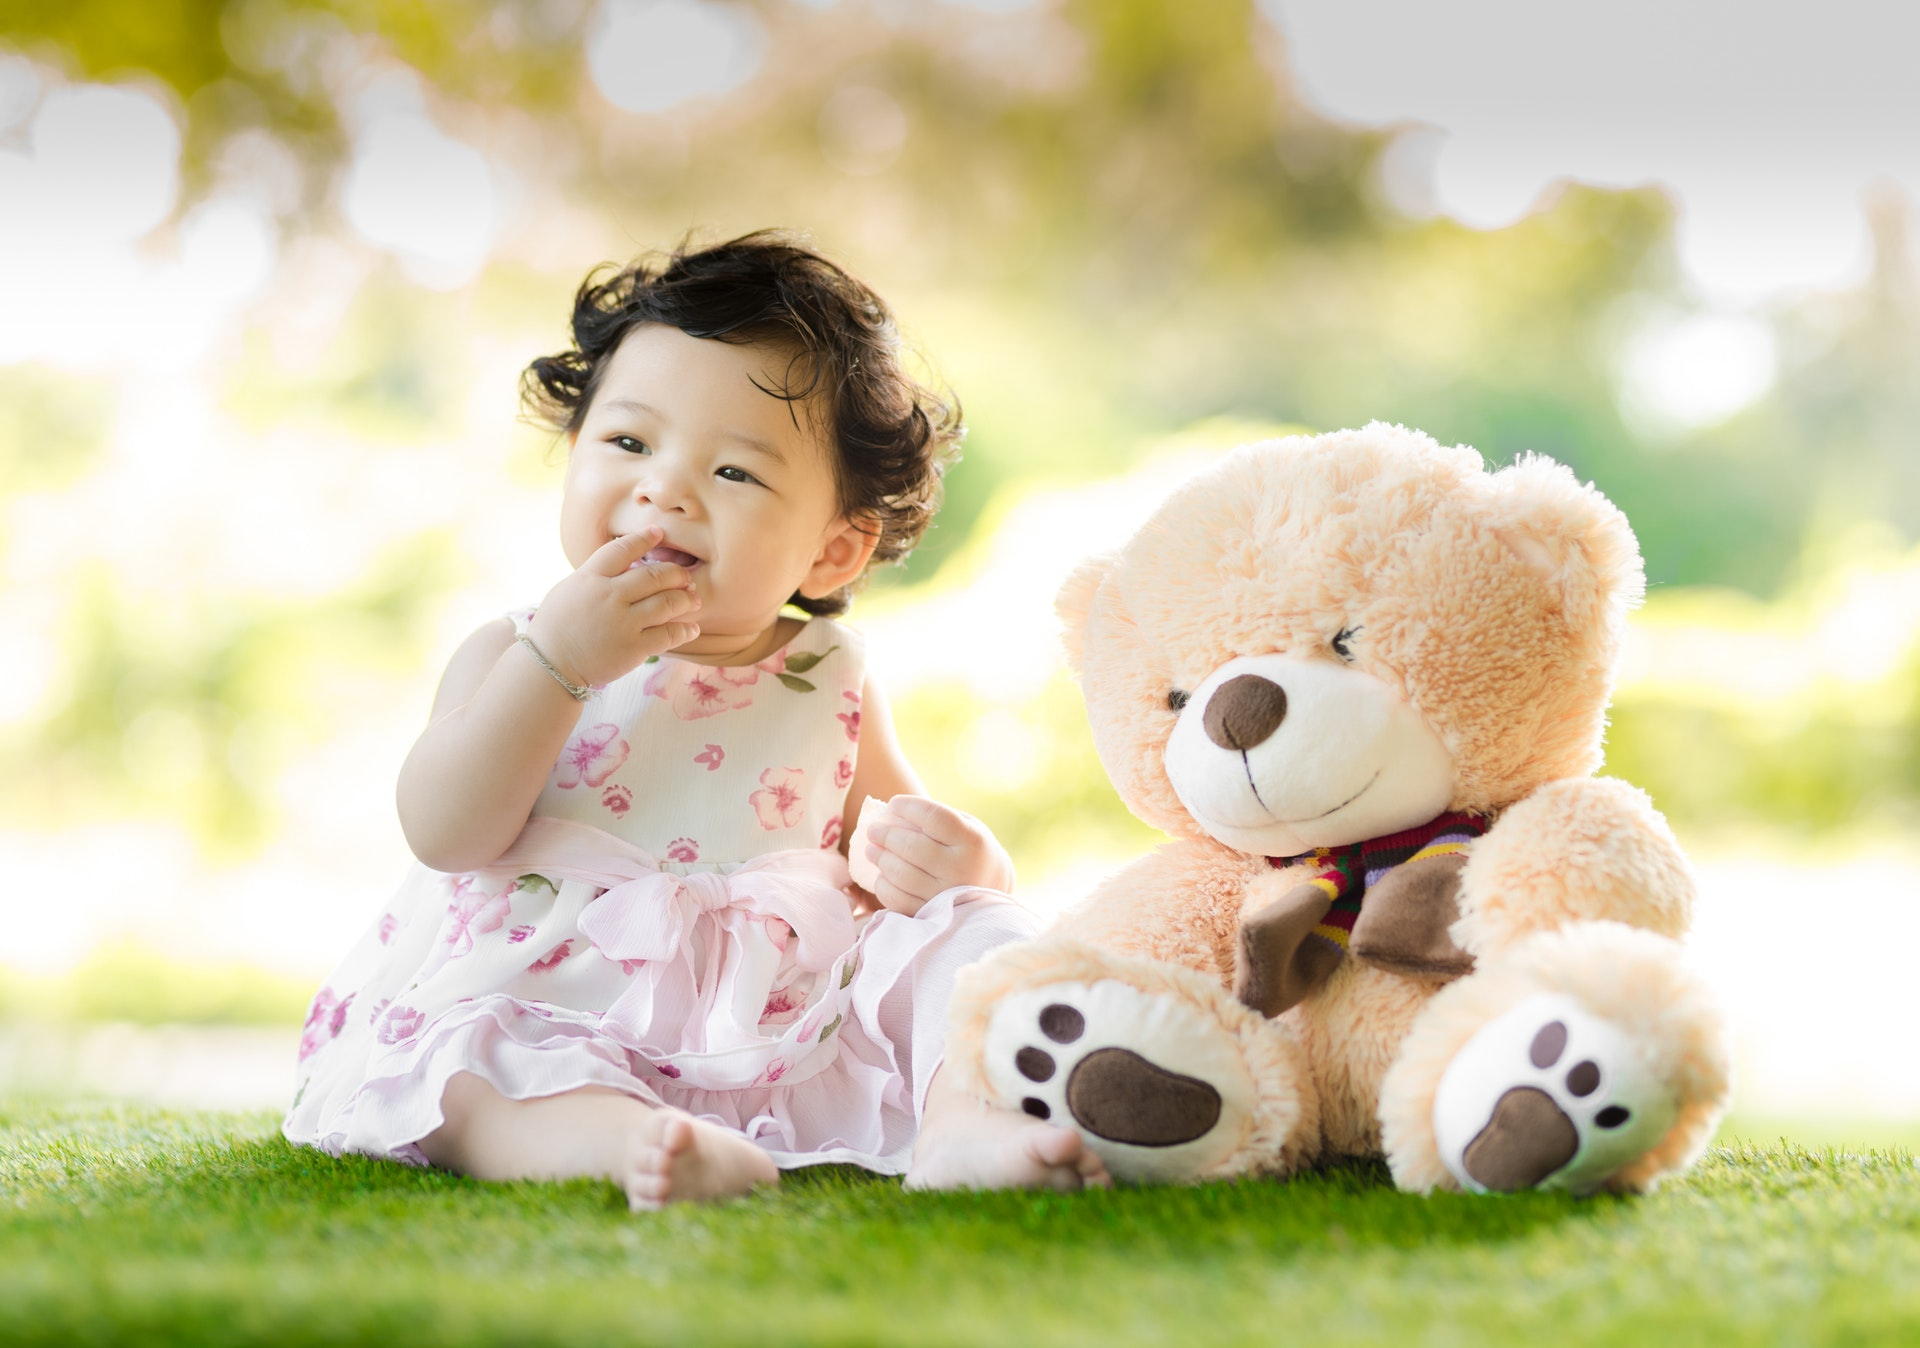 baby-sitting-on-green-grass-beside-bear-plush-toy-at-daytime-1166473